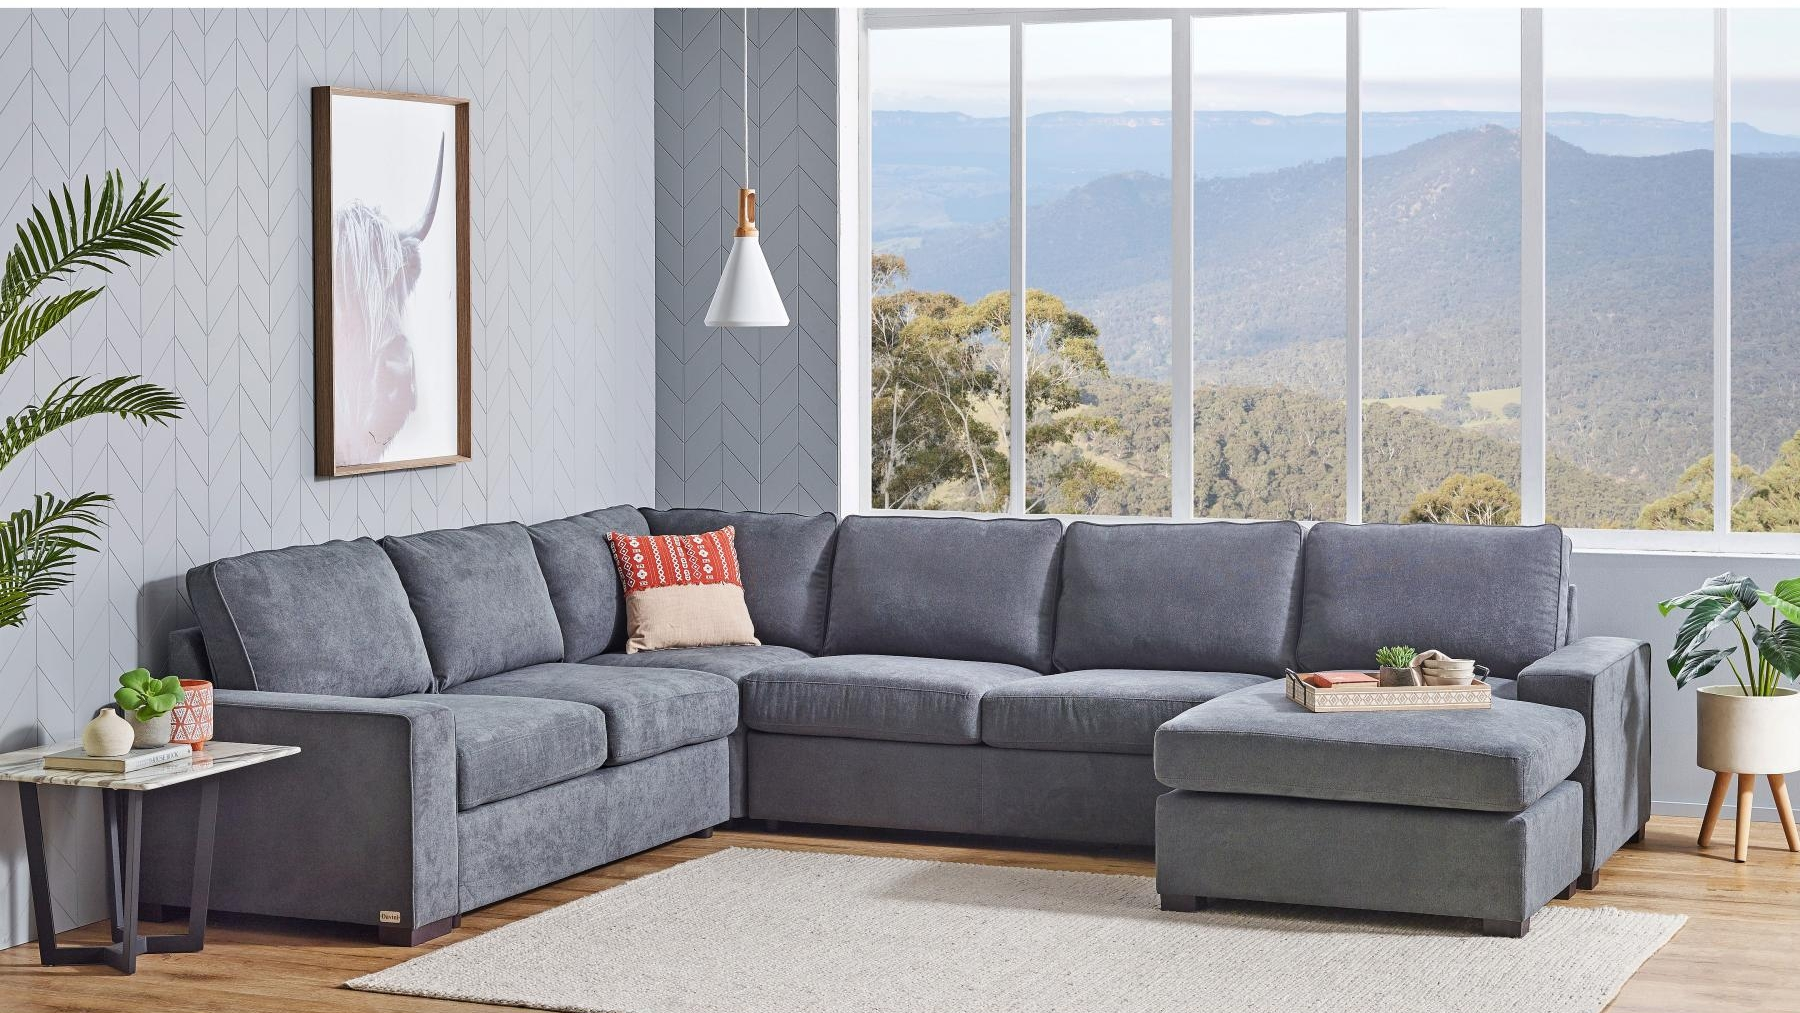 Buy Bronson 6 Seater Modular Lounge Suite With Sofa Bed Harvey Norman Au